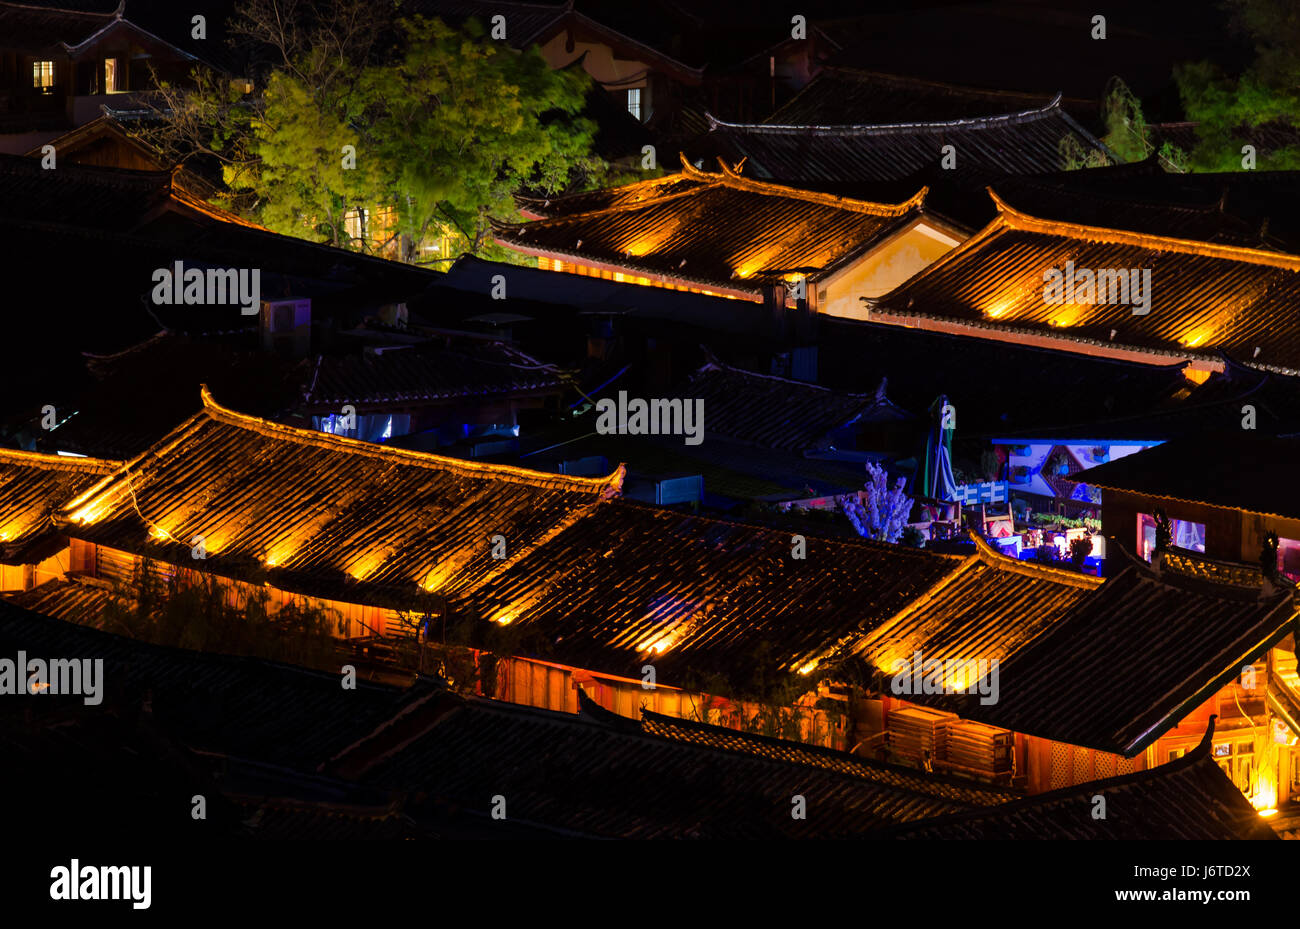 Night view of Old Town of Lijiang, Yunnan Province, China. - Stock Image